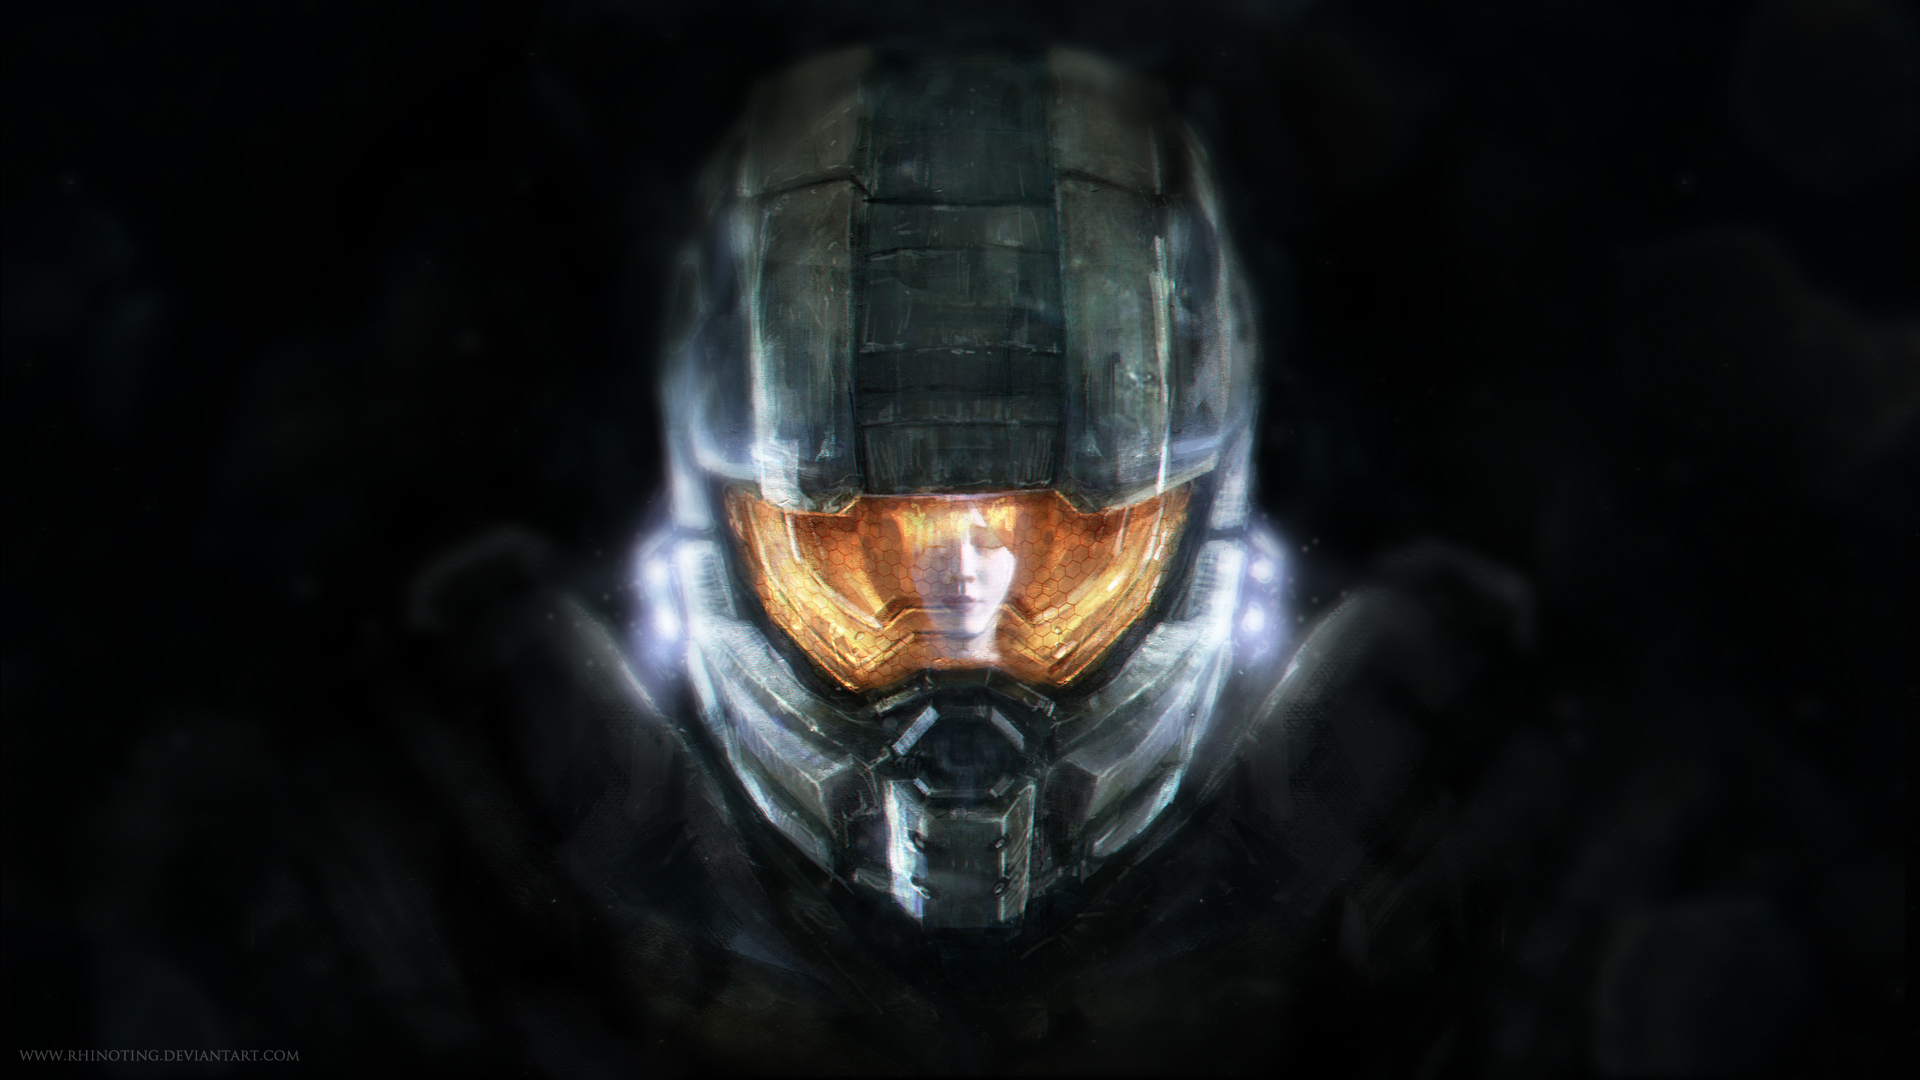 Cortana Halo Wallpaper and Pix for Gt Master Chief